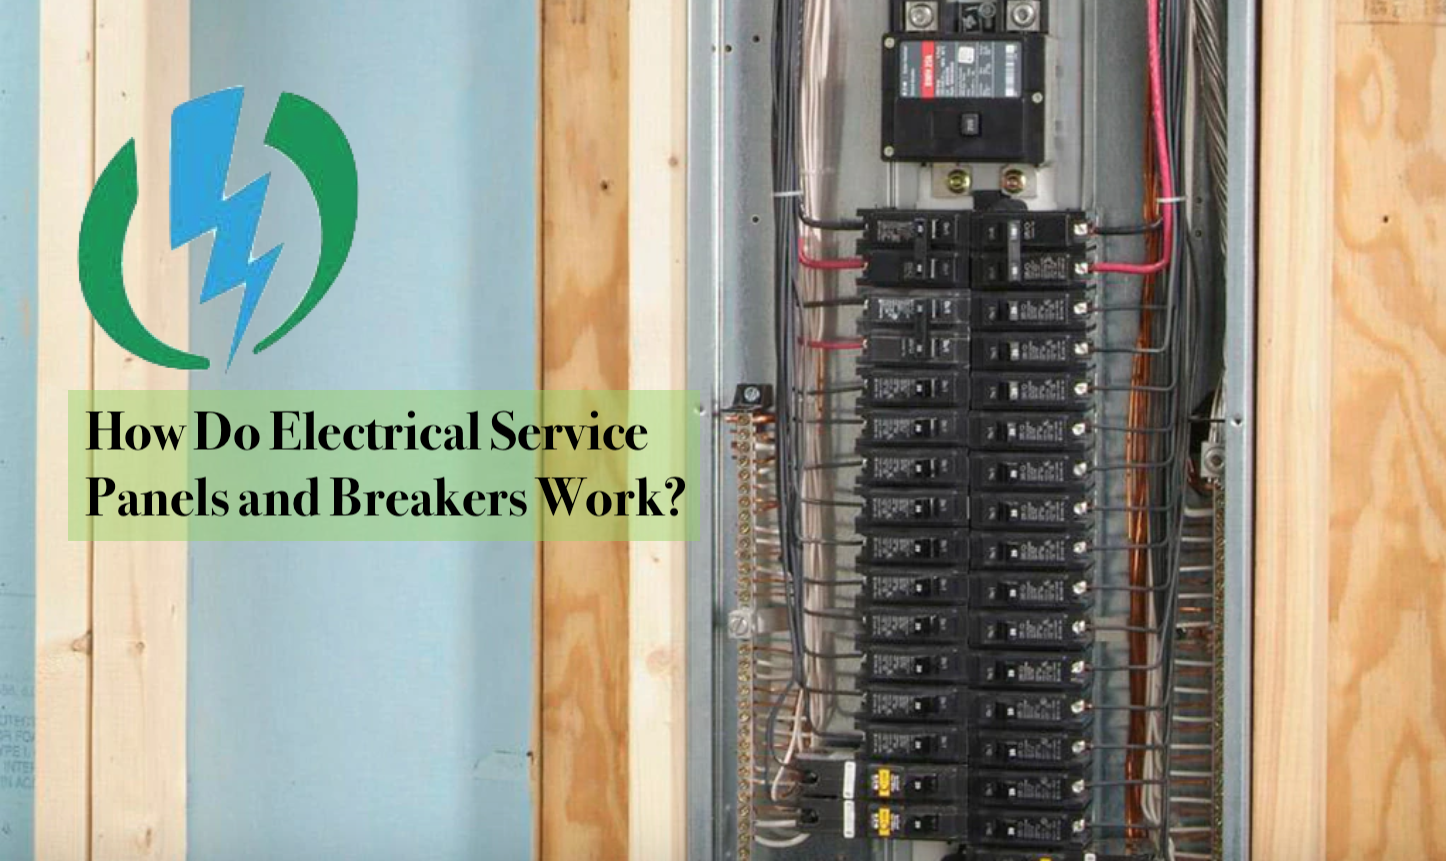 How Do Electrical Service Panels and Breakers Work?